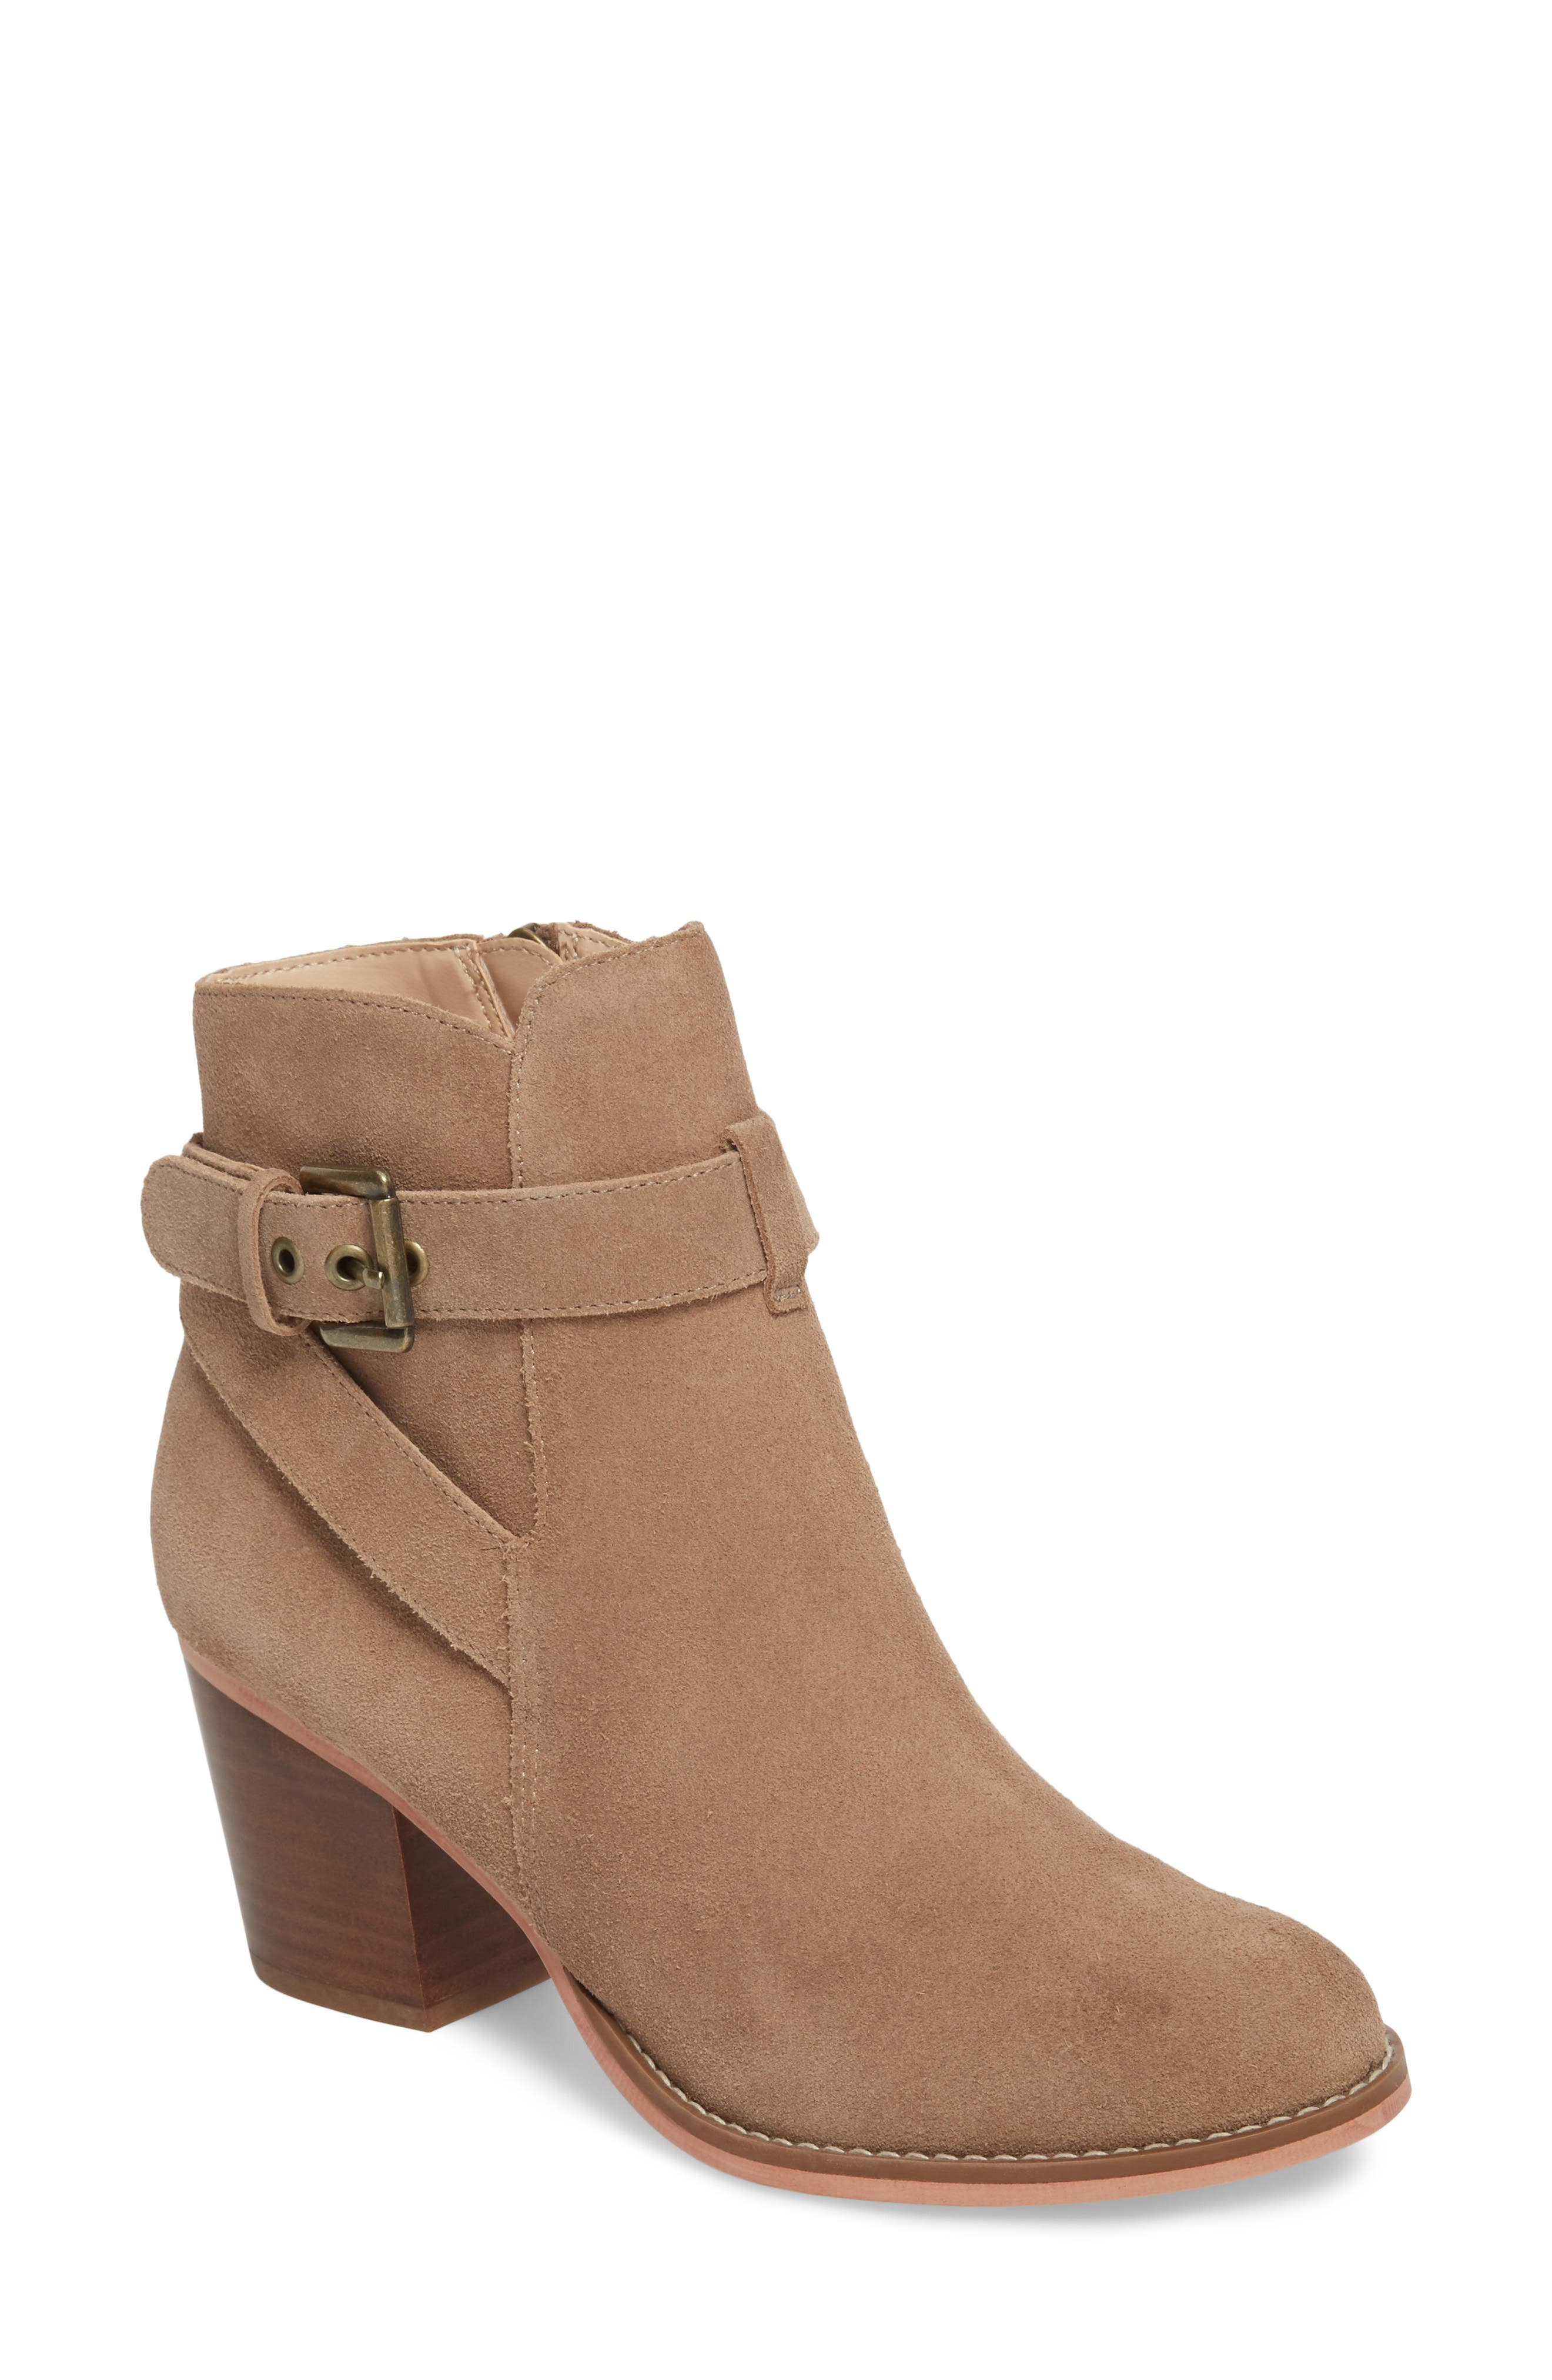 Main Image - Sole Society Paislee Buckle Strap Bootie (Women)